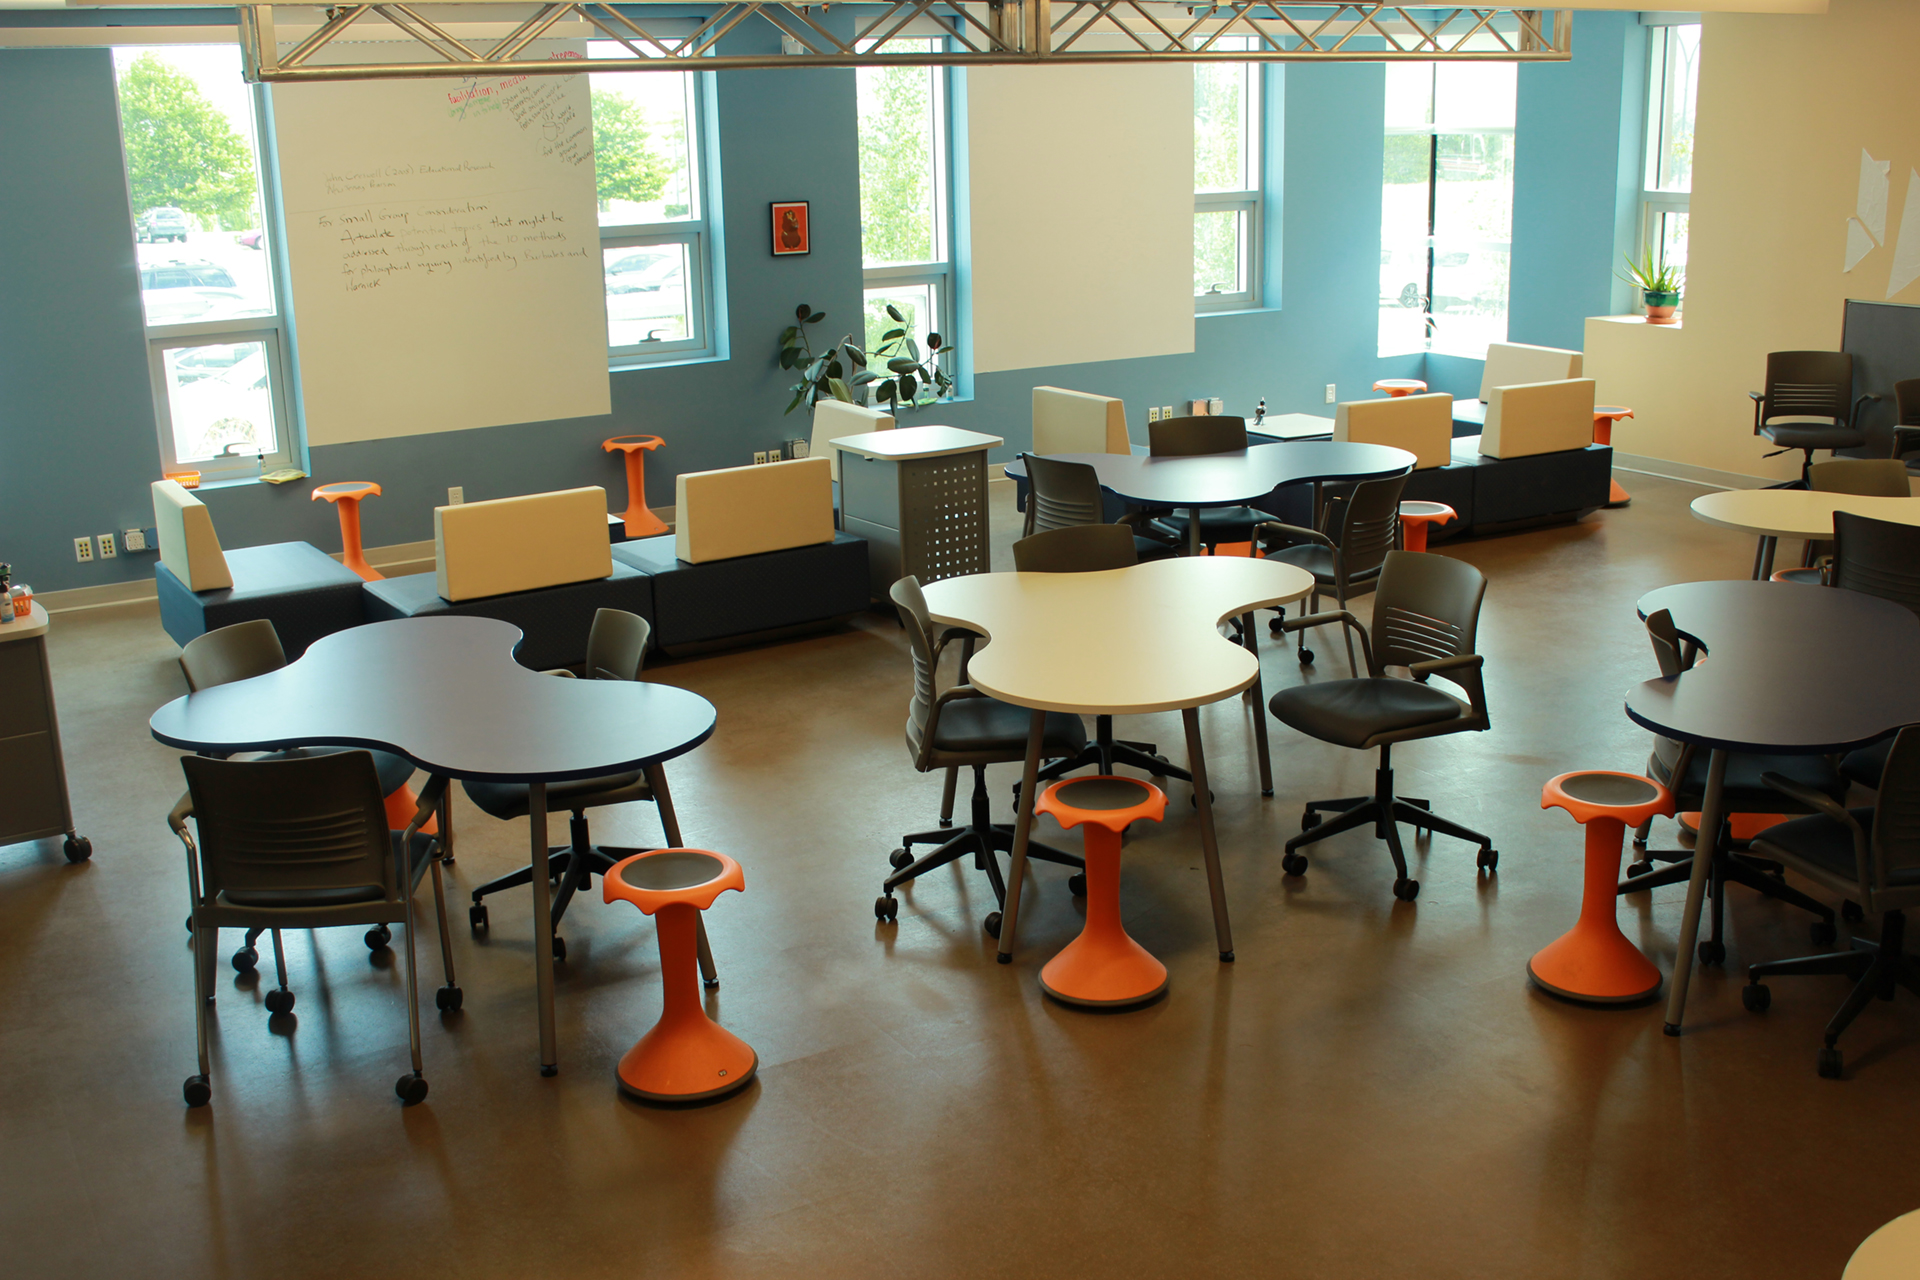 Innovative Classroom Layouts : Learning spaces by kayri shanahan on emaze